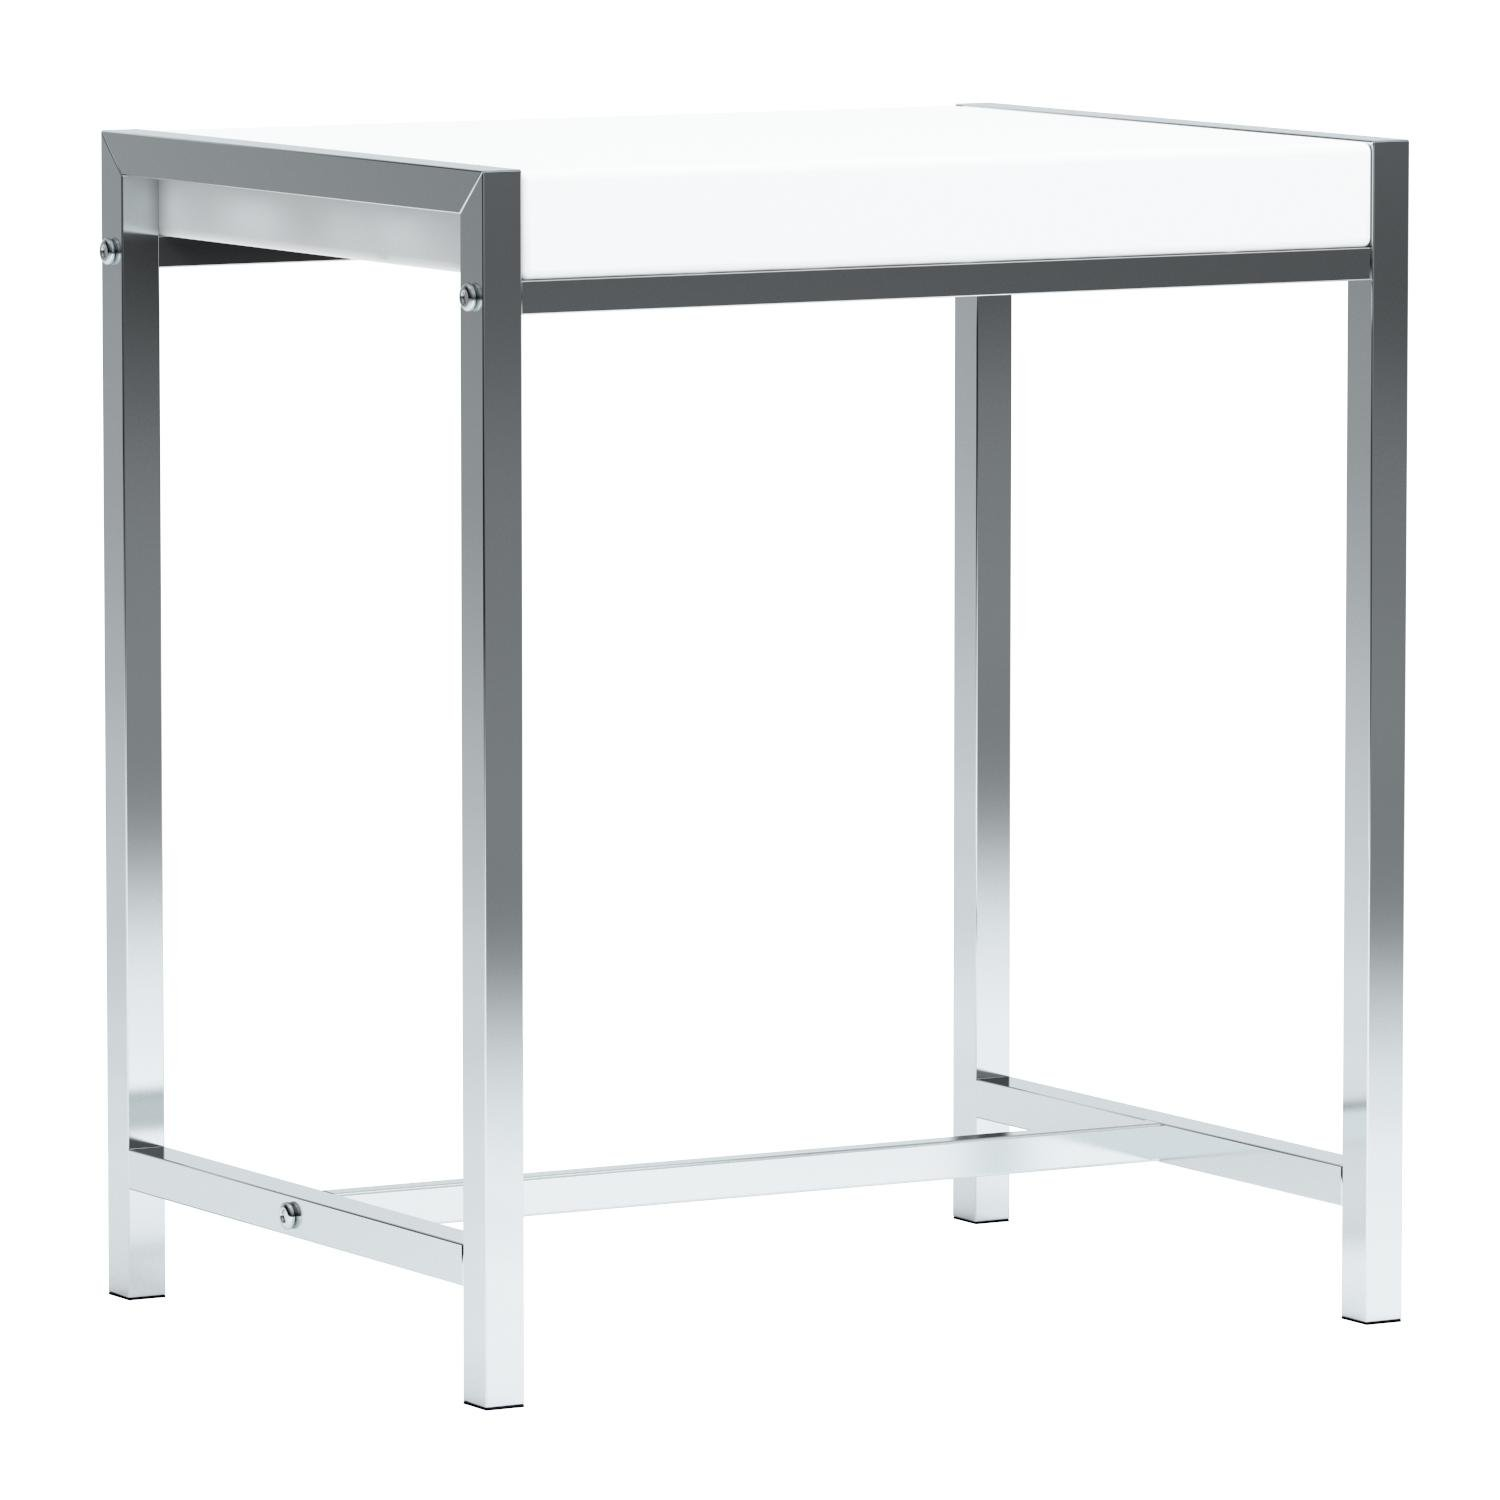 Monarch I 3050 Metal Accent Table, White Acrylic/Chrome by Monarch Specialties (Image #9)